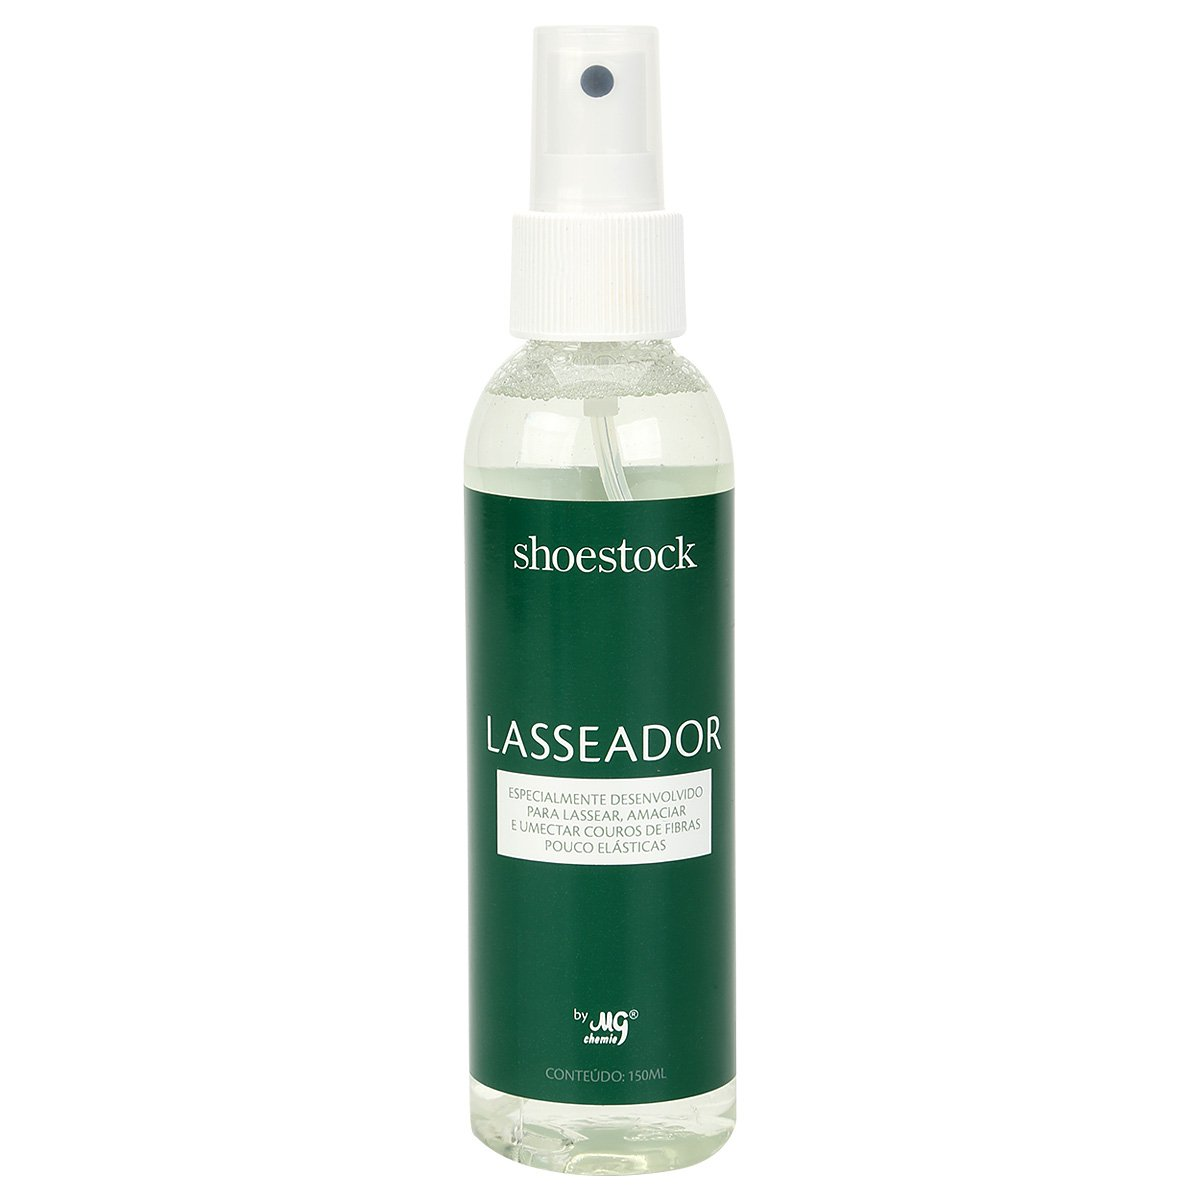 Lasseador Shoestock 150ml